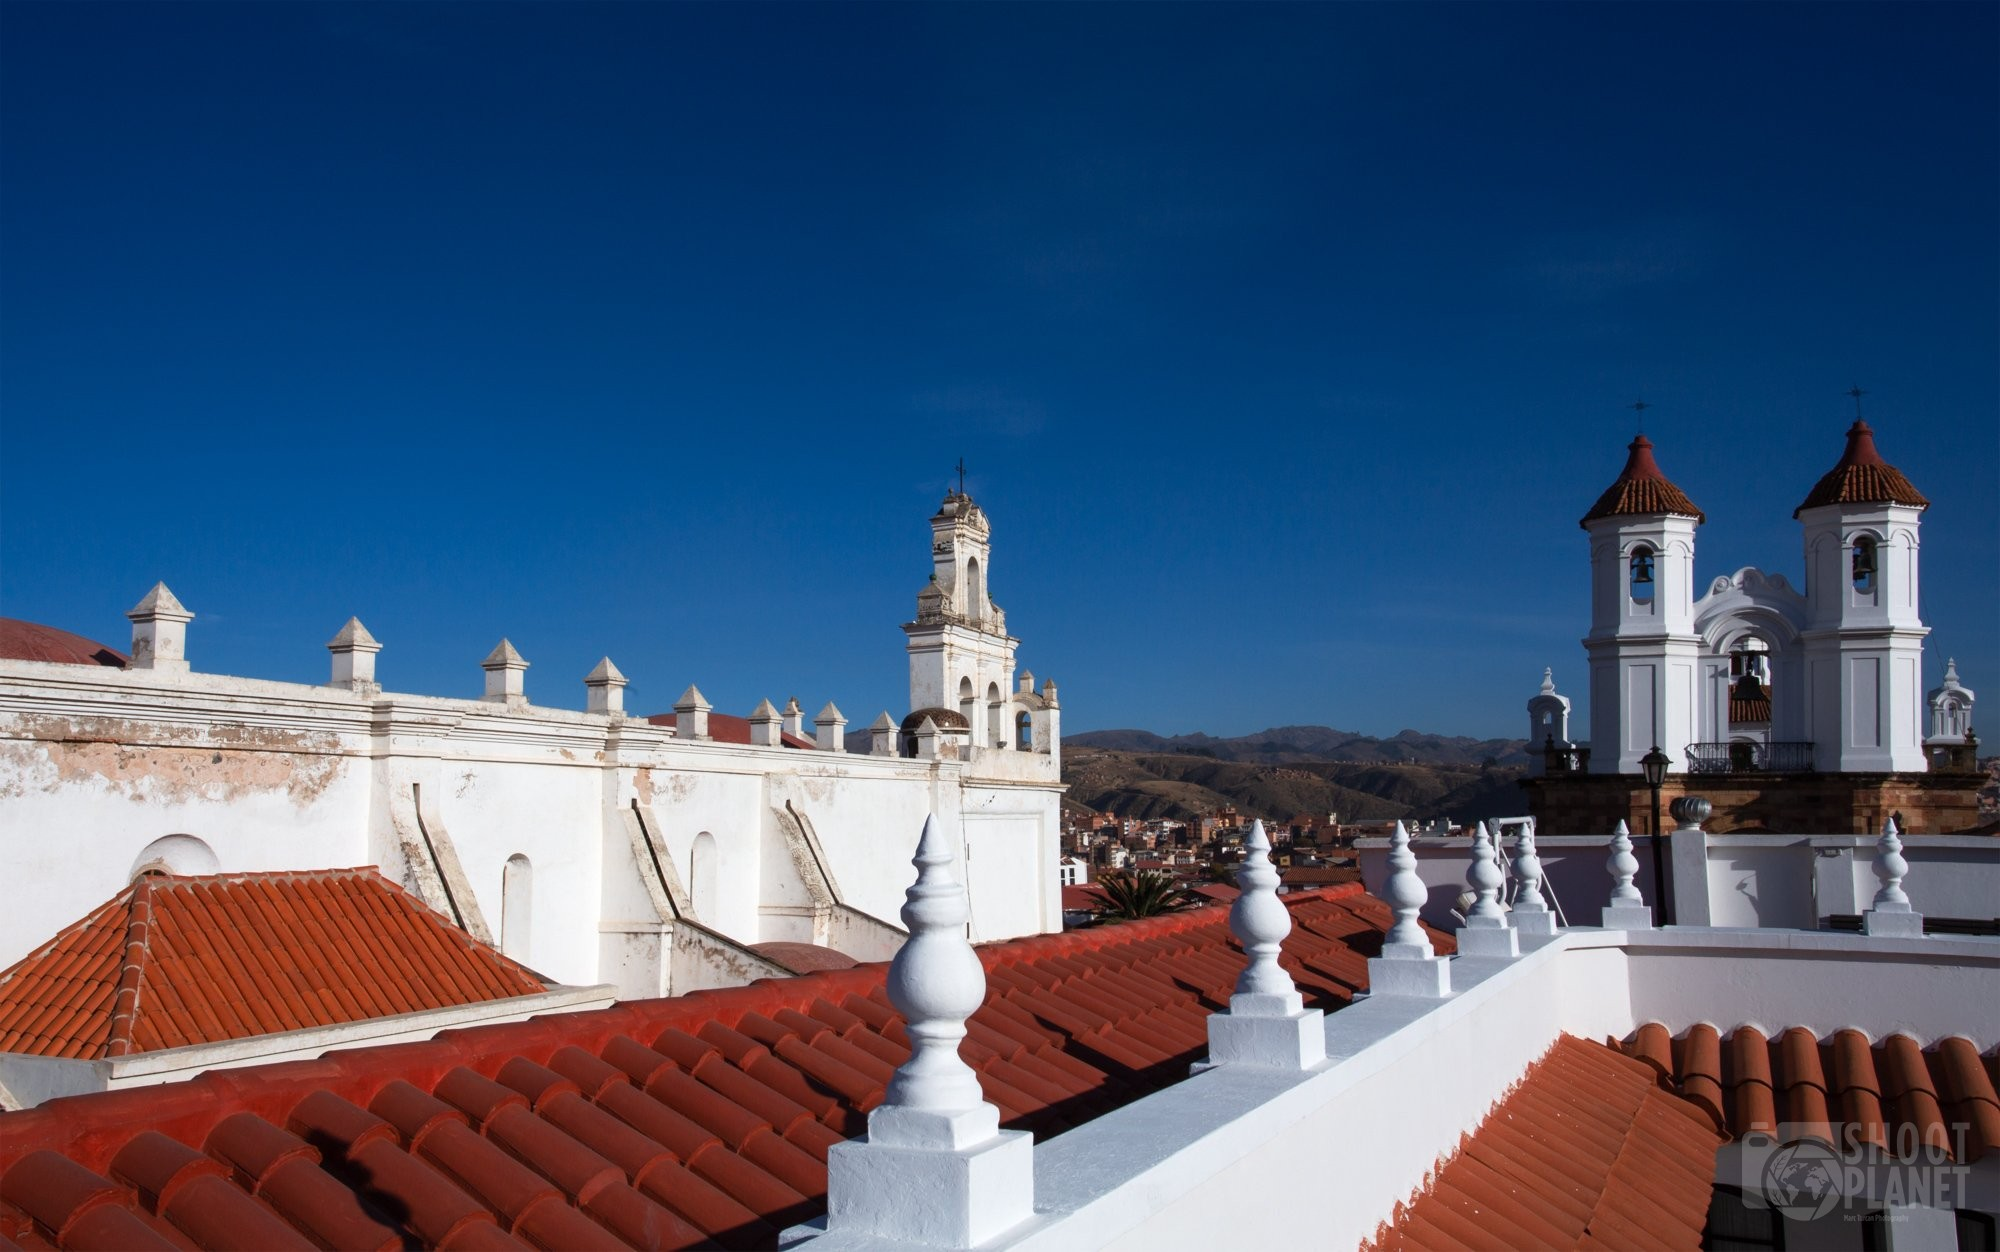 Monastery and church skyline in Sucre, Bolivia